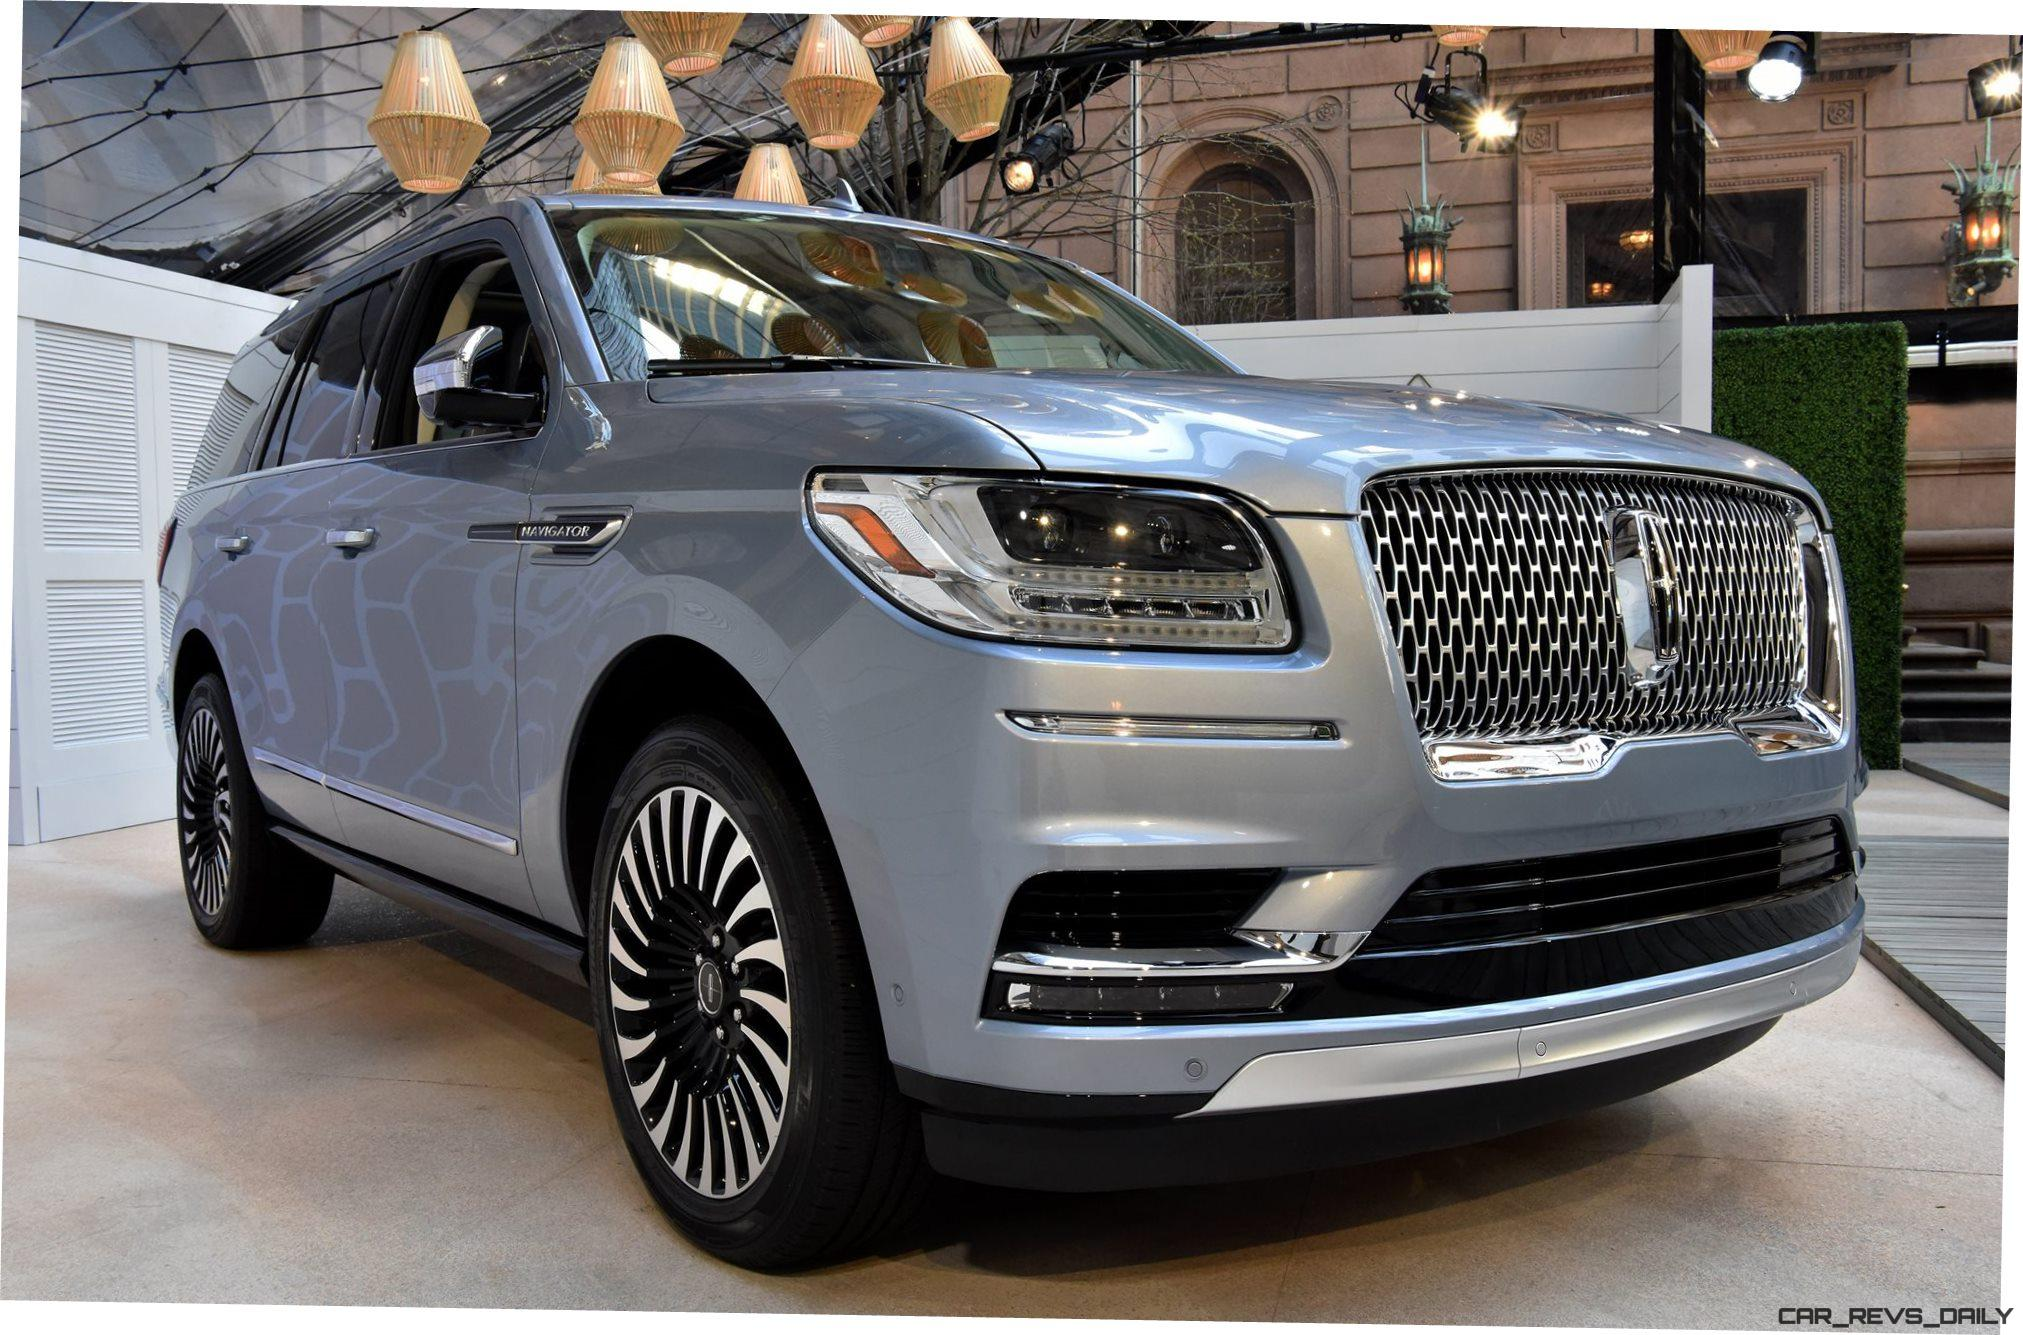 best of nyias 2018 lincoln navigator 450hp 10 speed. Black Bedroom Furniture Sets. Home Design Ideas